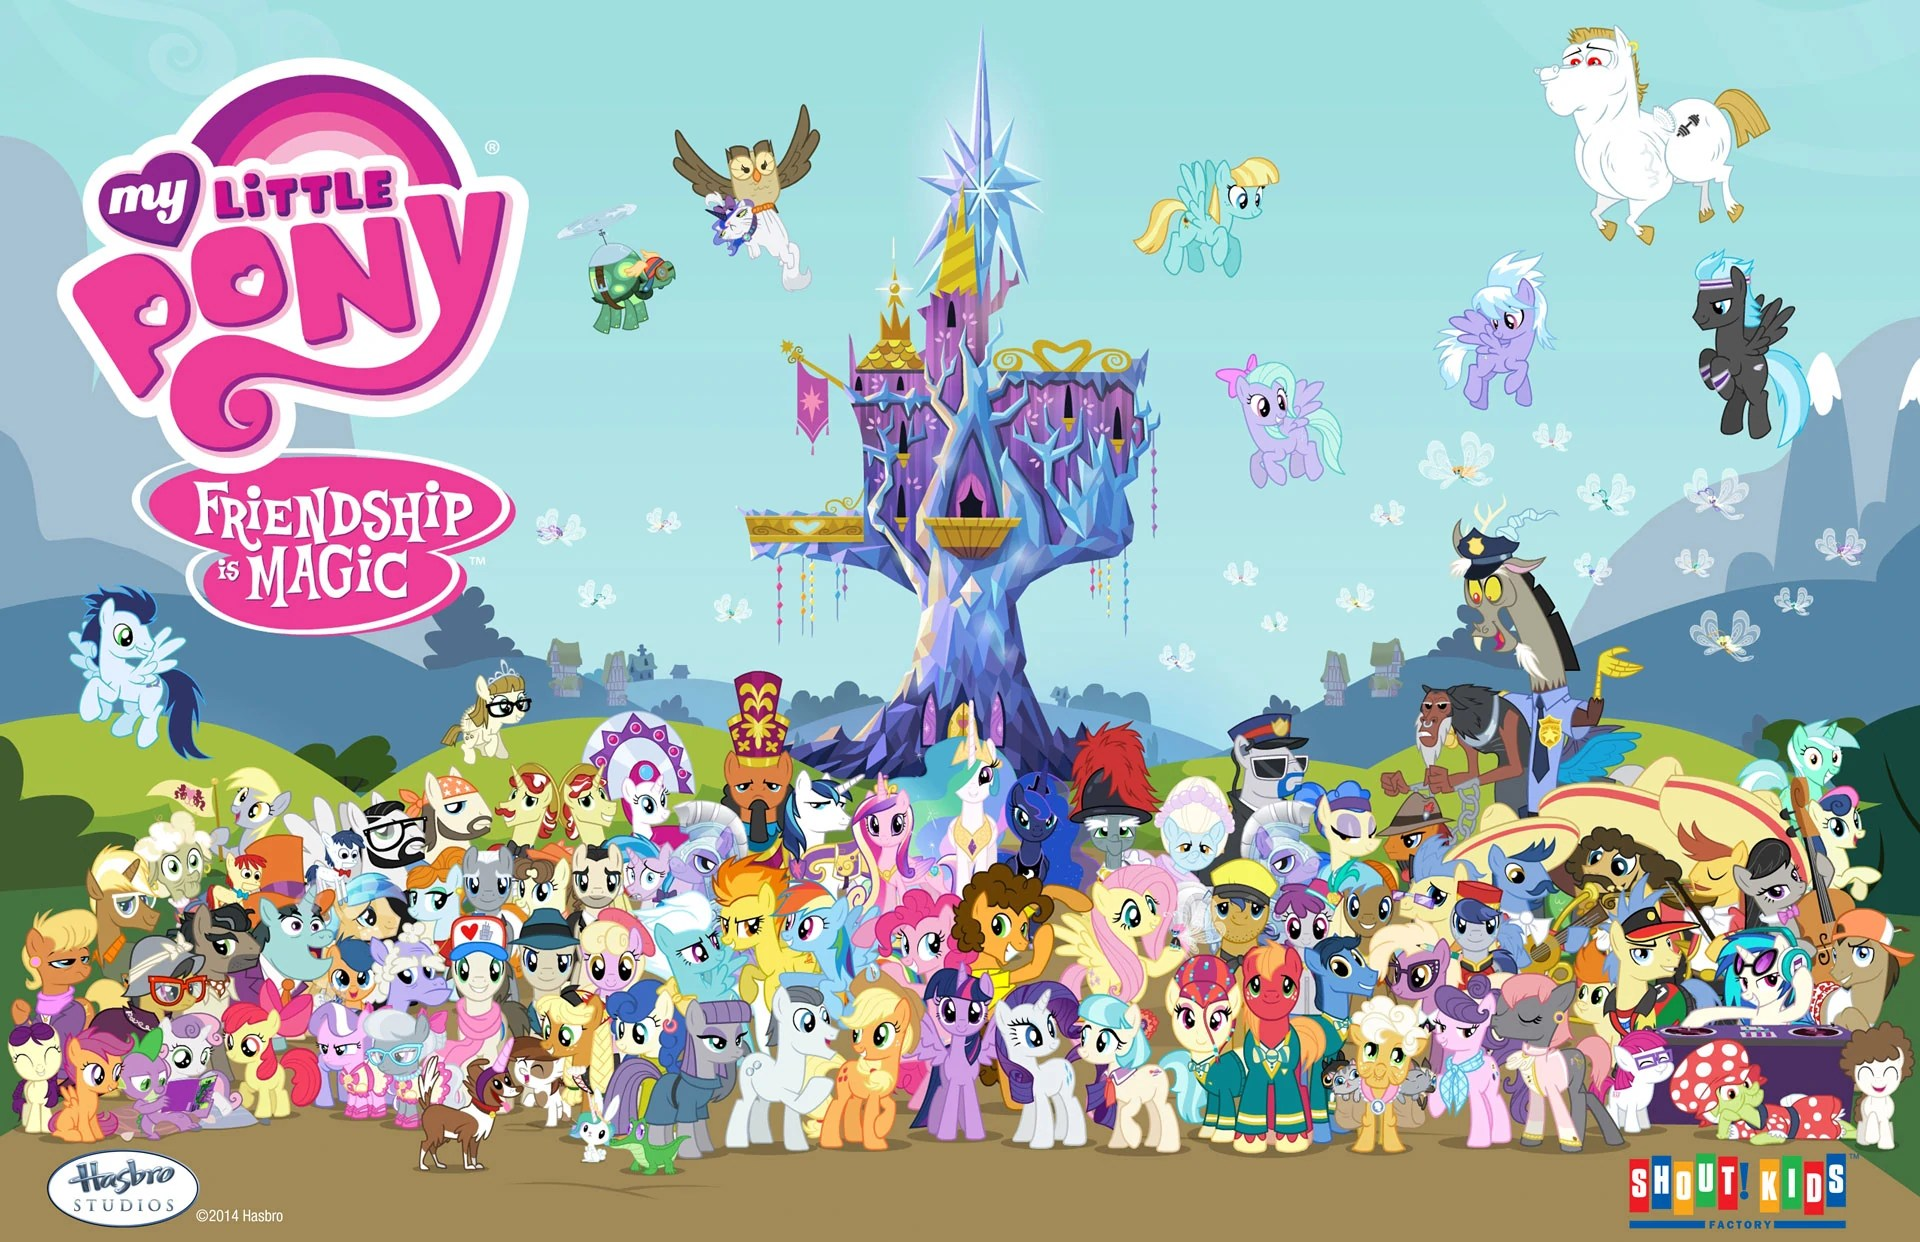 My Little Pony Friendship Is Magic Character Profile